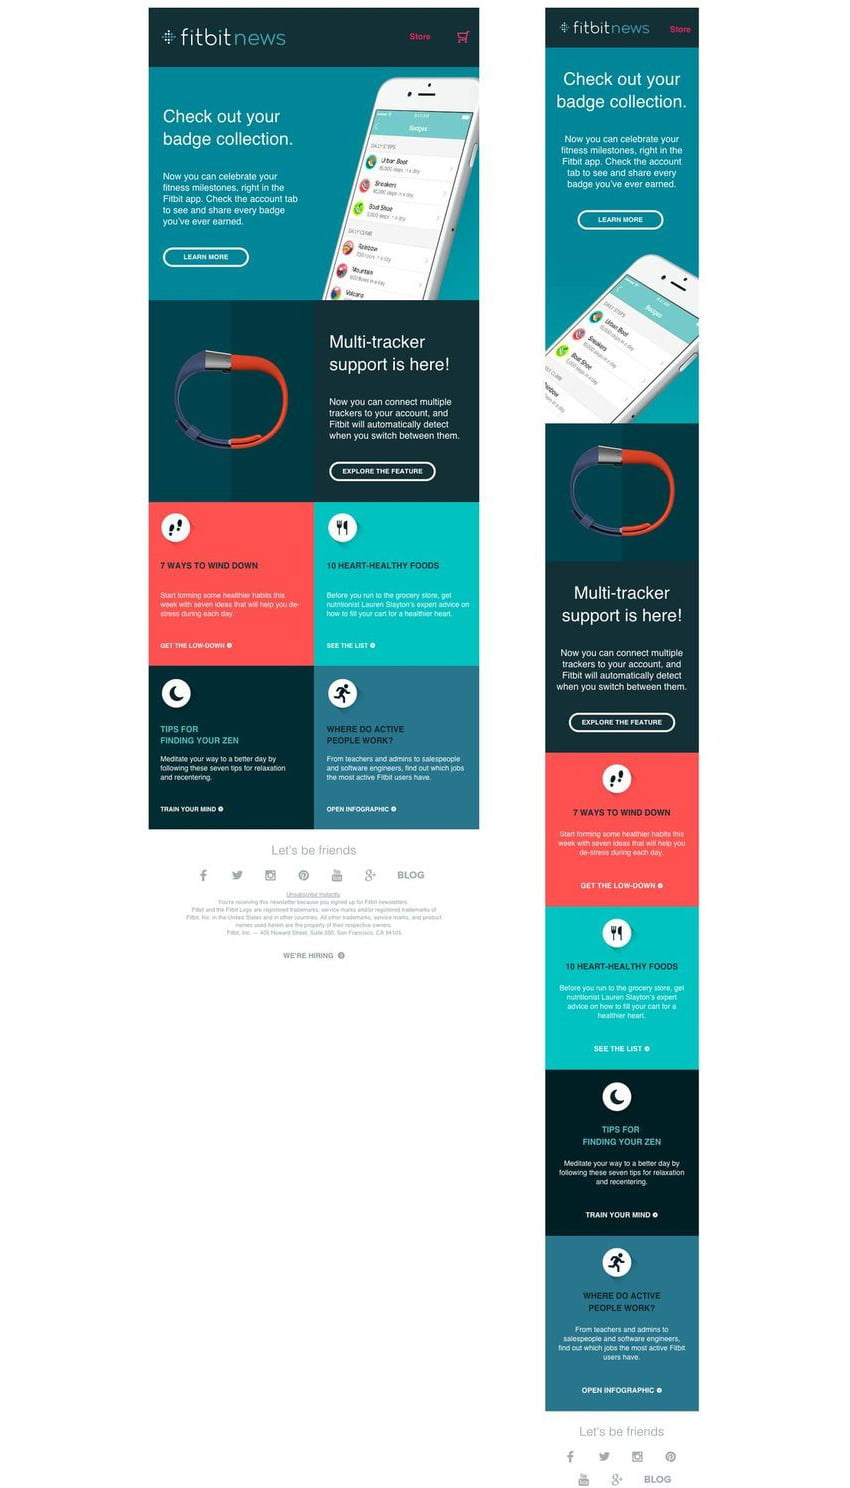 SmartMessage - Example of an Effective Responsive Email